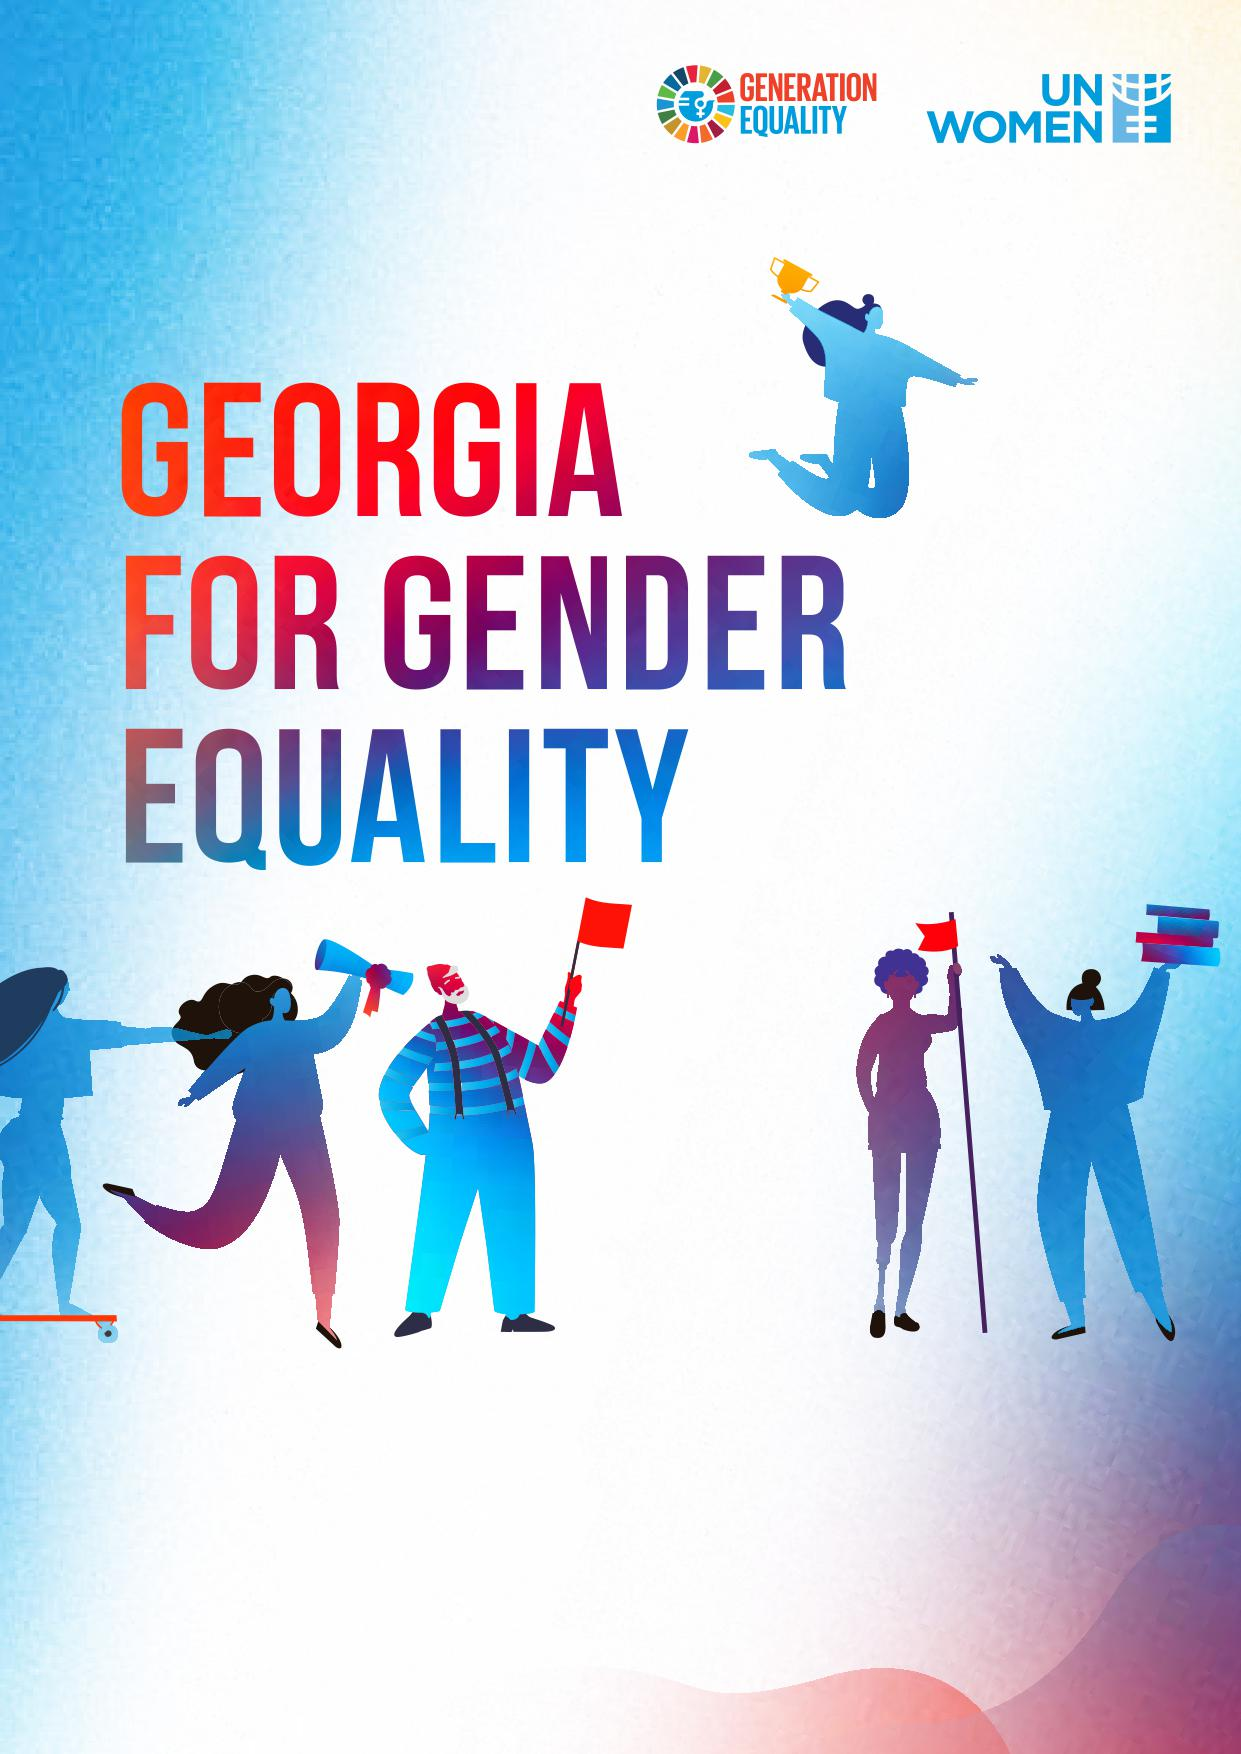 Georgia for Gender Equality. Photo: UN Women